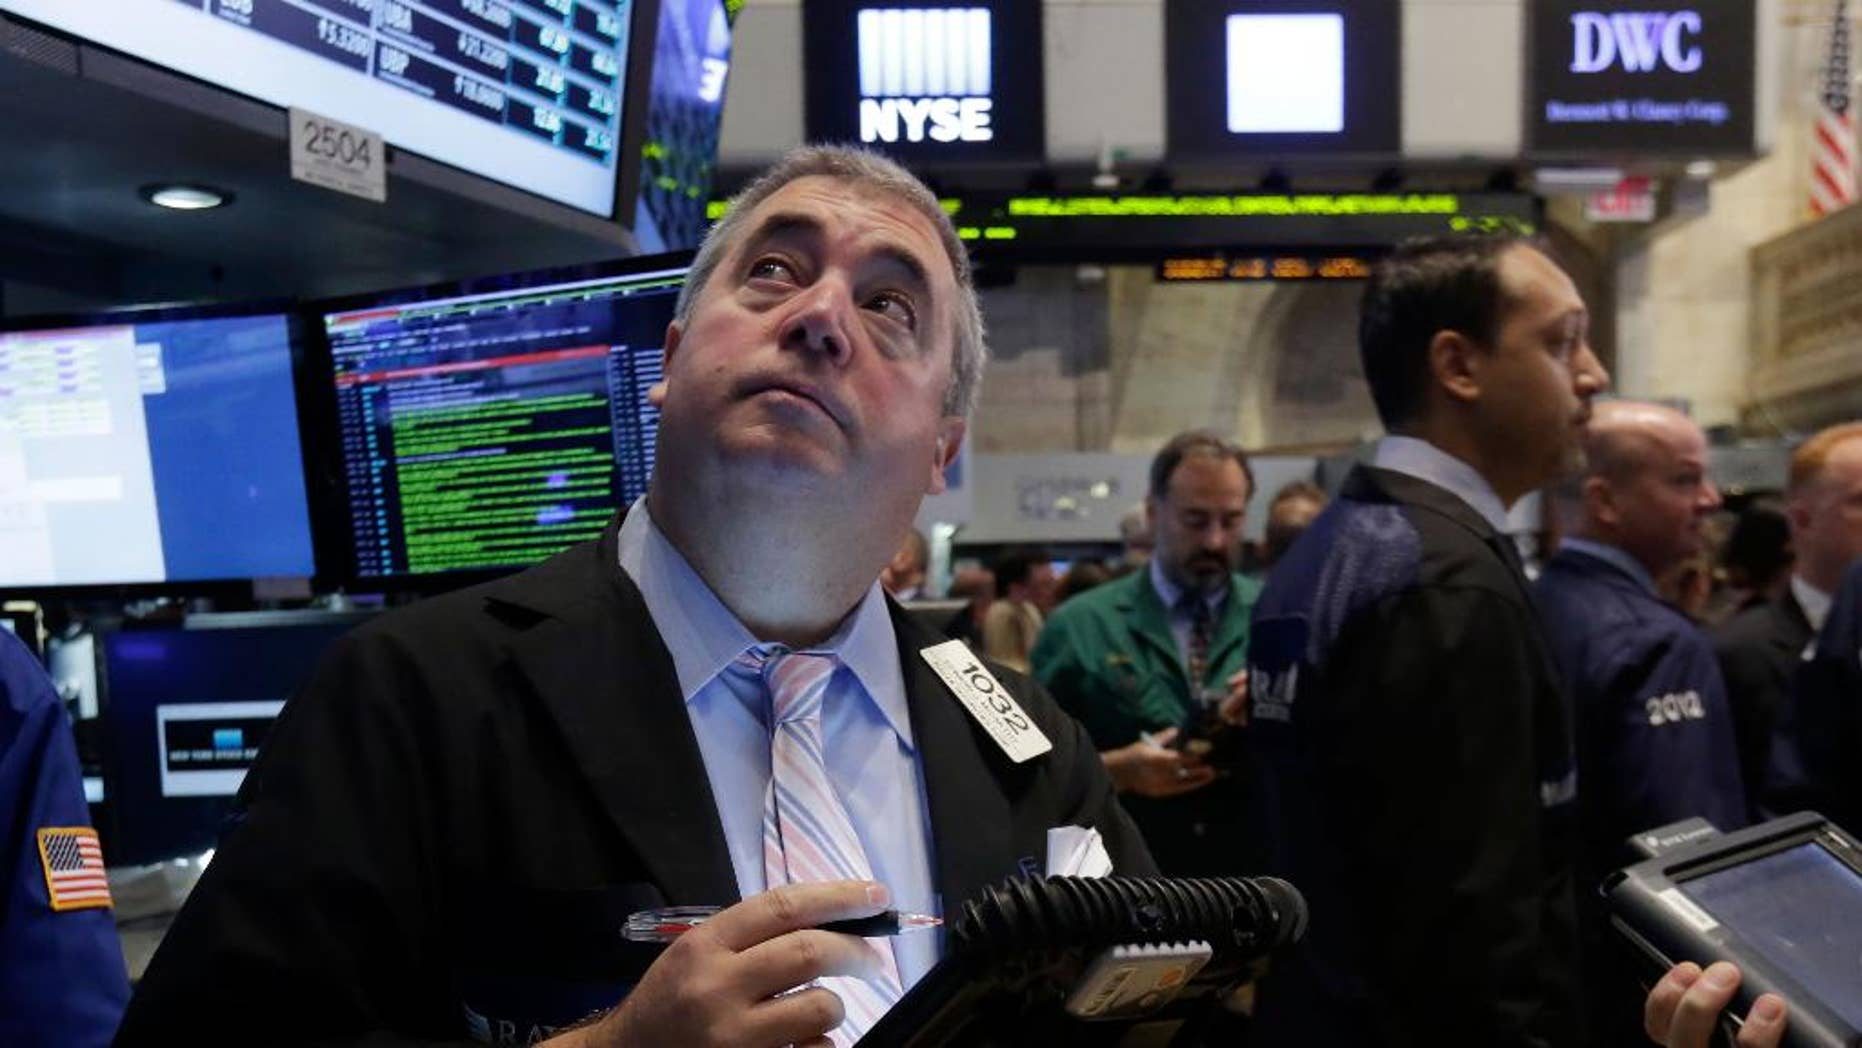 FILE - In this Thursday, Aug. 21, 2014, file photo, trader Edward McCarthy, left, works on the floor of the New York Stock Exchange. As stocks continue to rise, investors are wondering if it's time to sell. (AP Photo/Richard Drew, File)